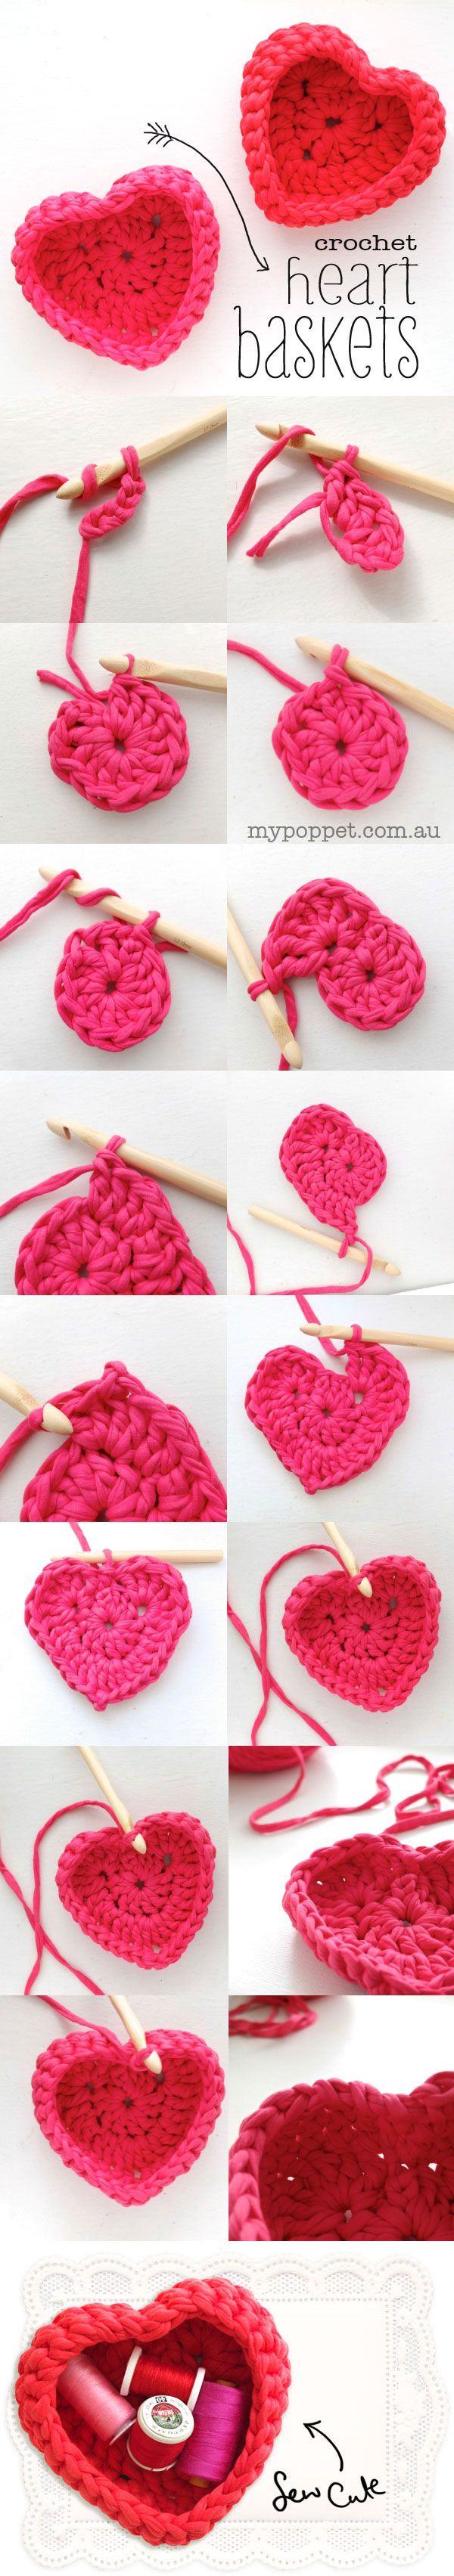 Make a cute crochet heart shaped basket from zpagetti yarn or upcycled tshirt yarn - a fun valentine craft project ✿Teresa Restegui http://www.pinterest.com/teretegui/✿